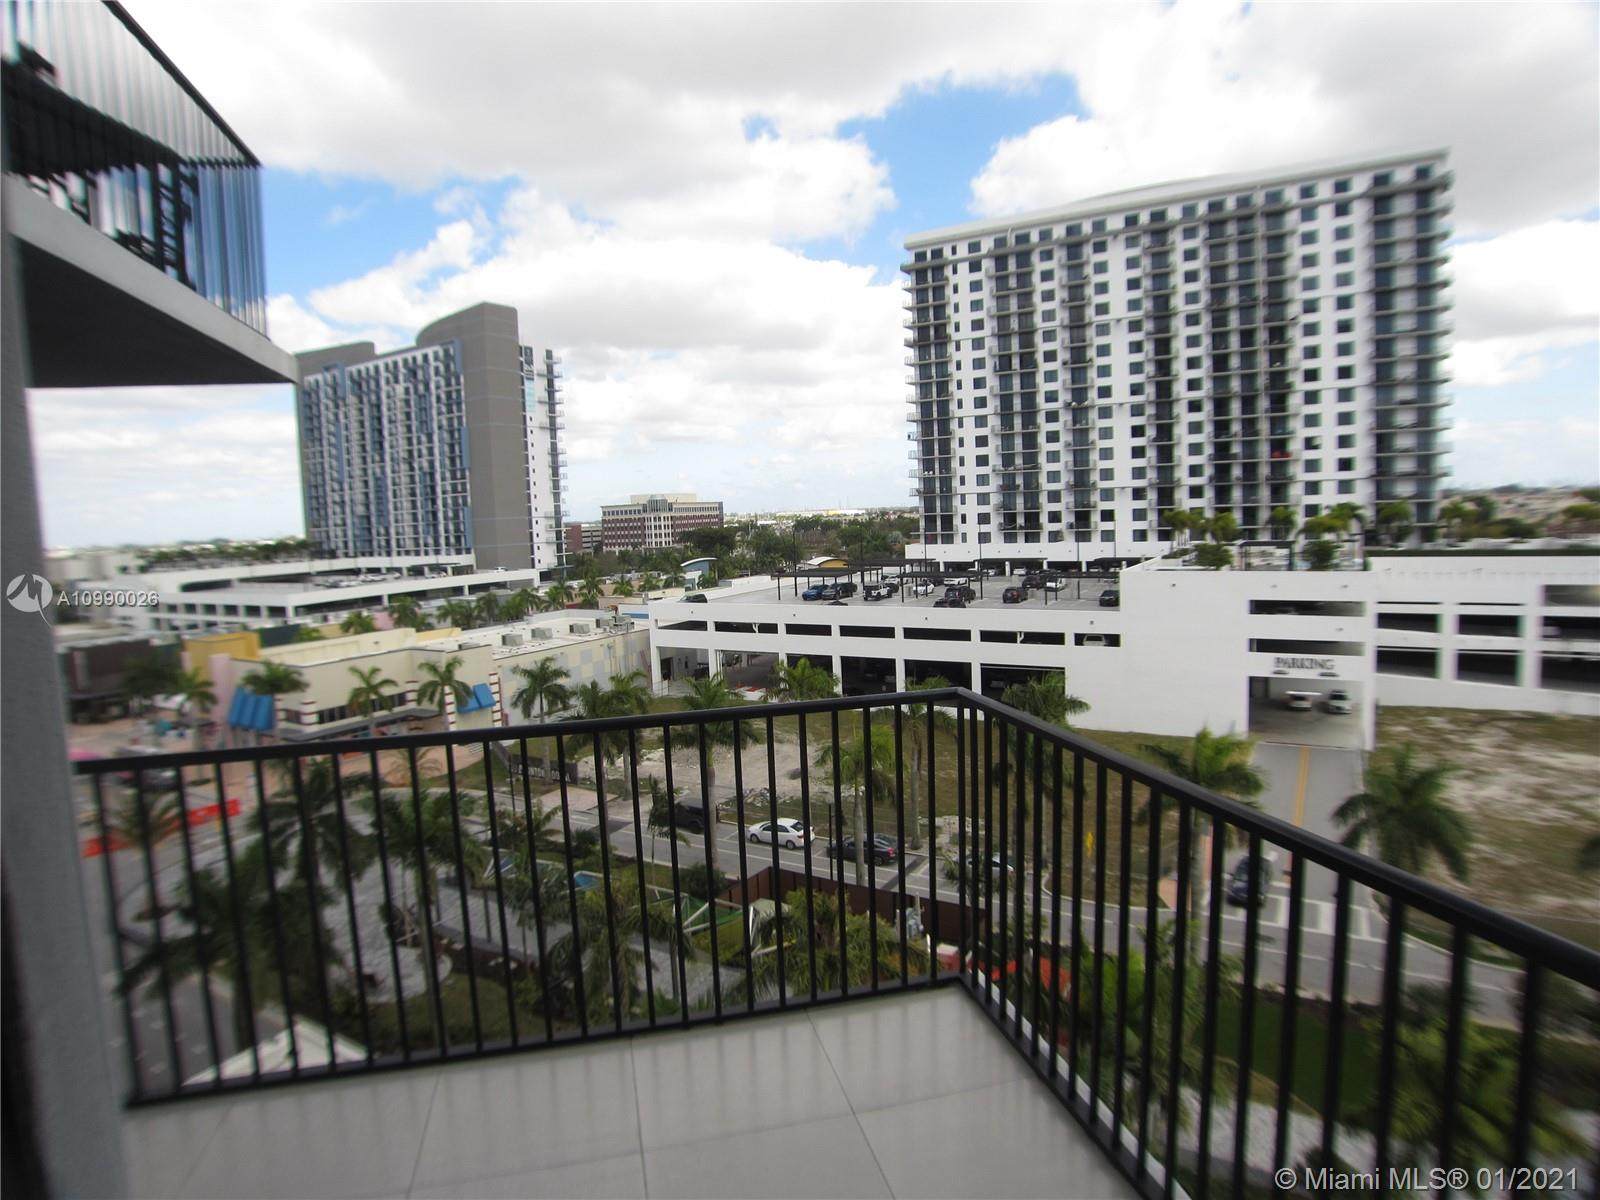 5252 Paseo #501 - 5252 NW 85th Ave #501, Doral, FL 33166